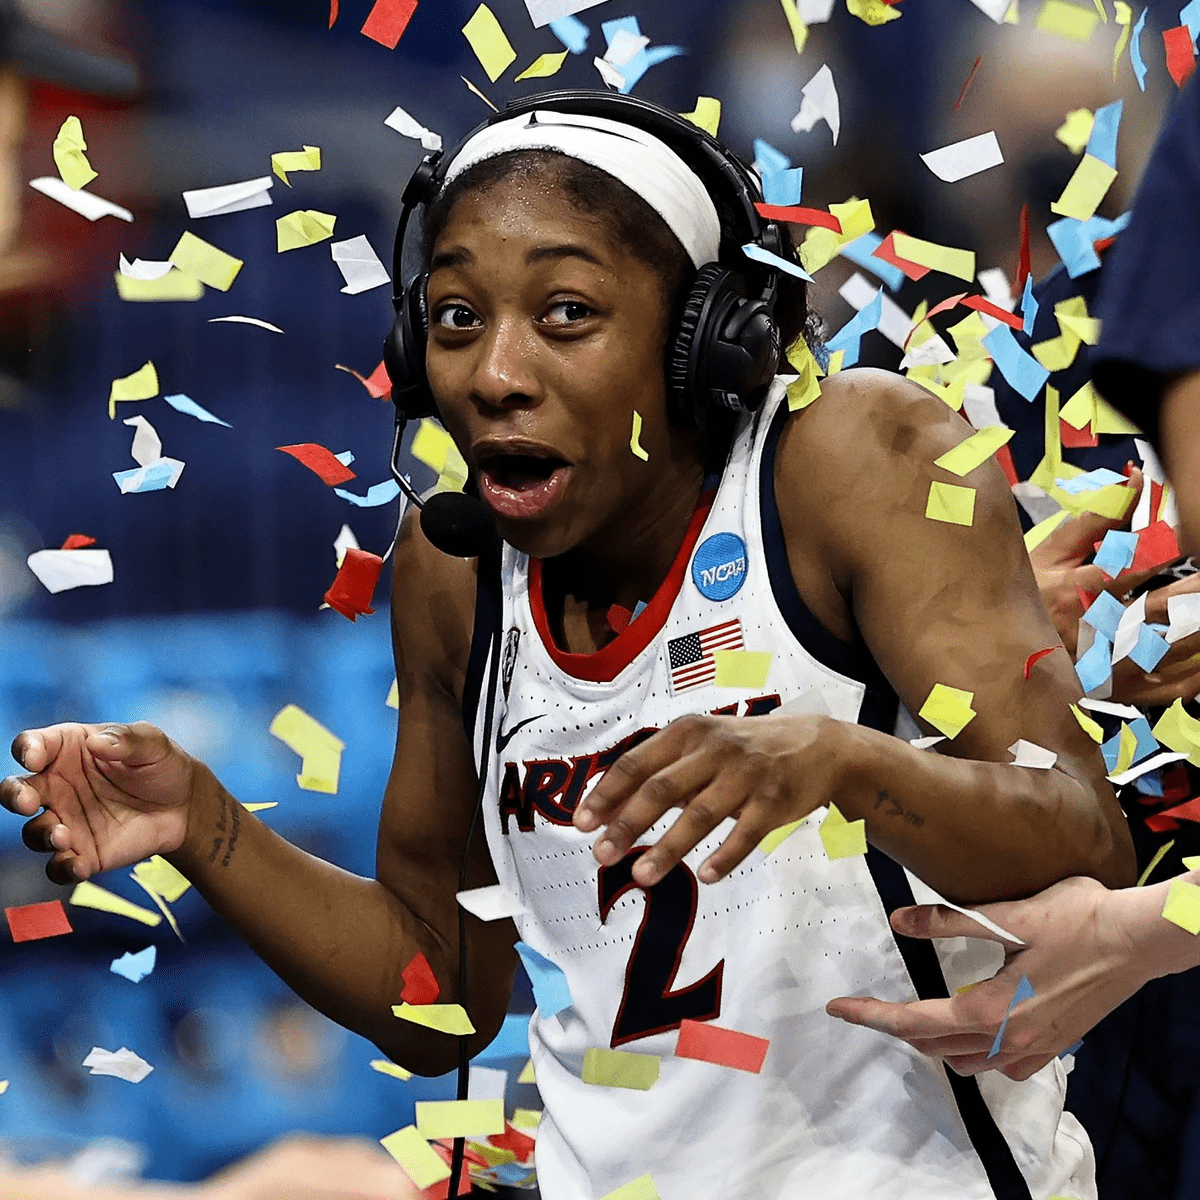 Aari looks happy and surprised as confetti is thrown over her during postgame interview